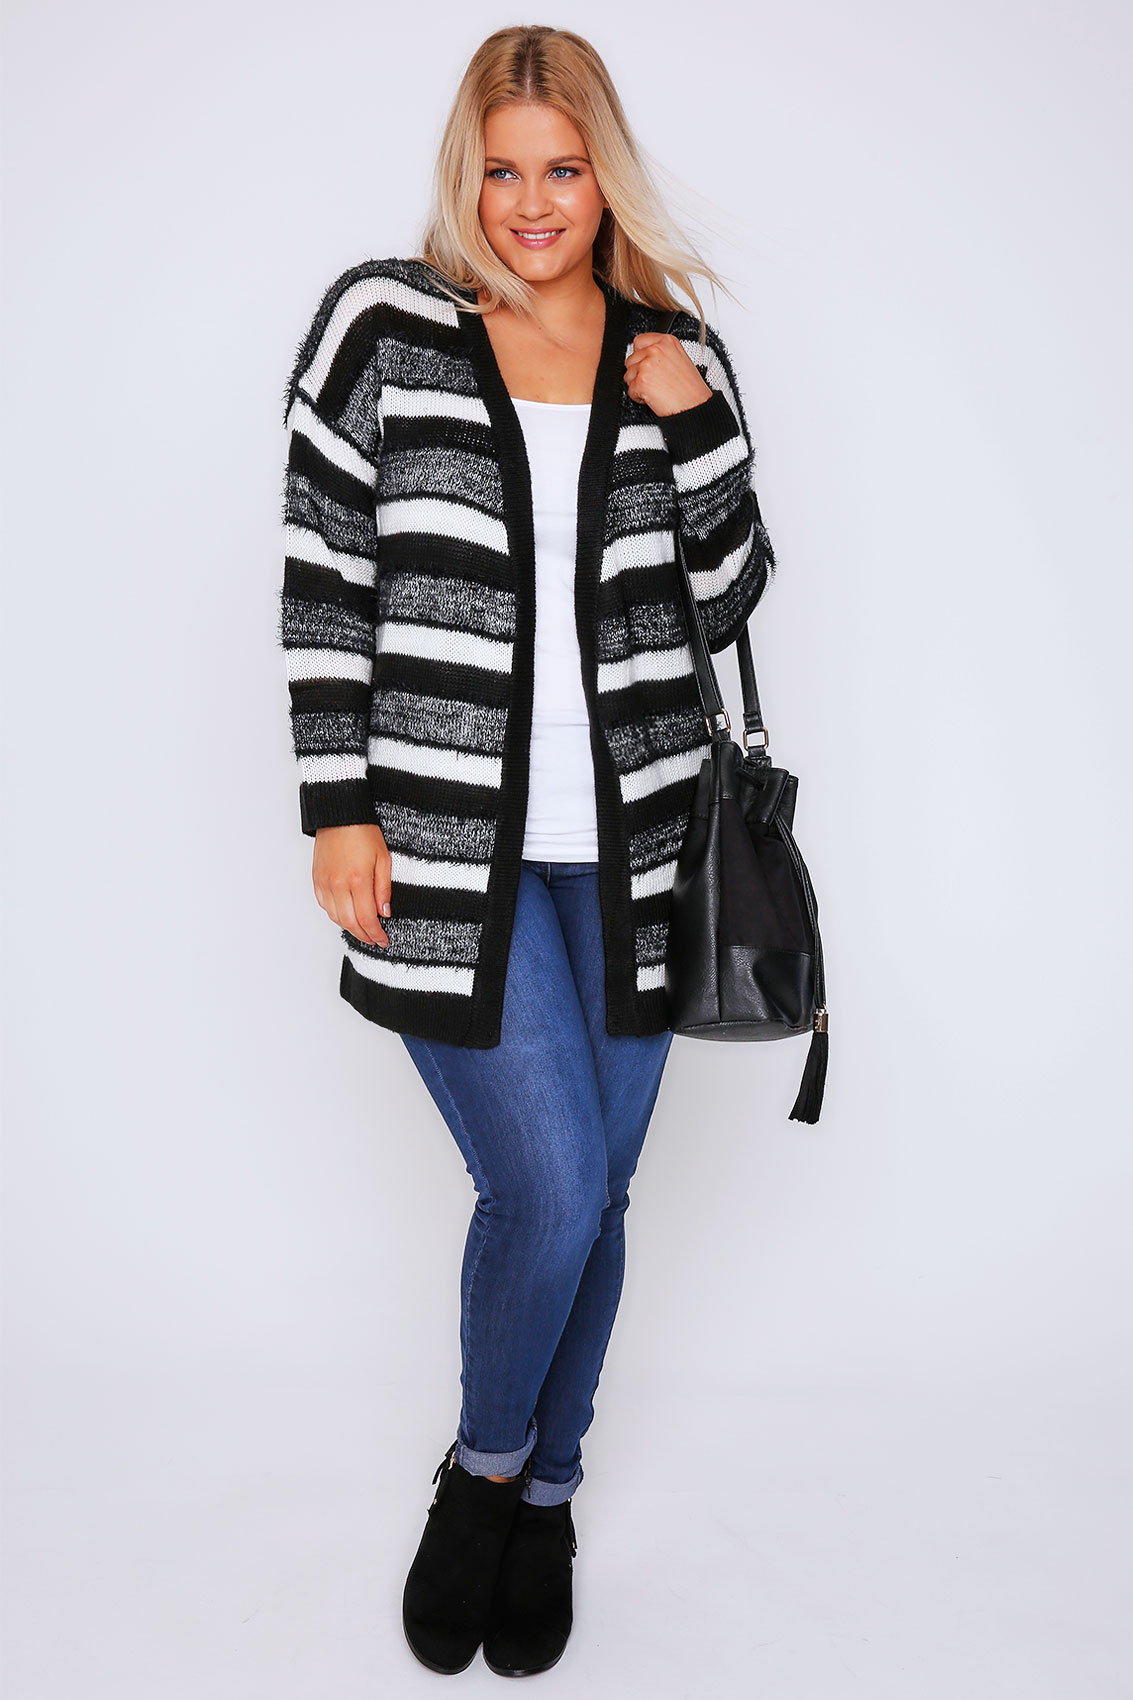 Black & Cream Stripe Knit Longline Cardigan Plus Size 16 to 36